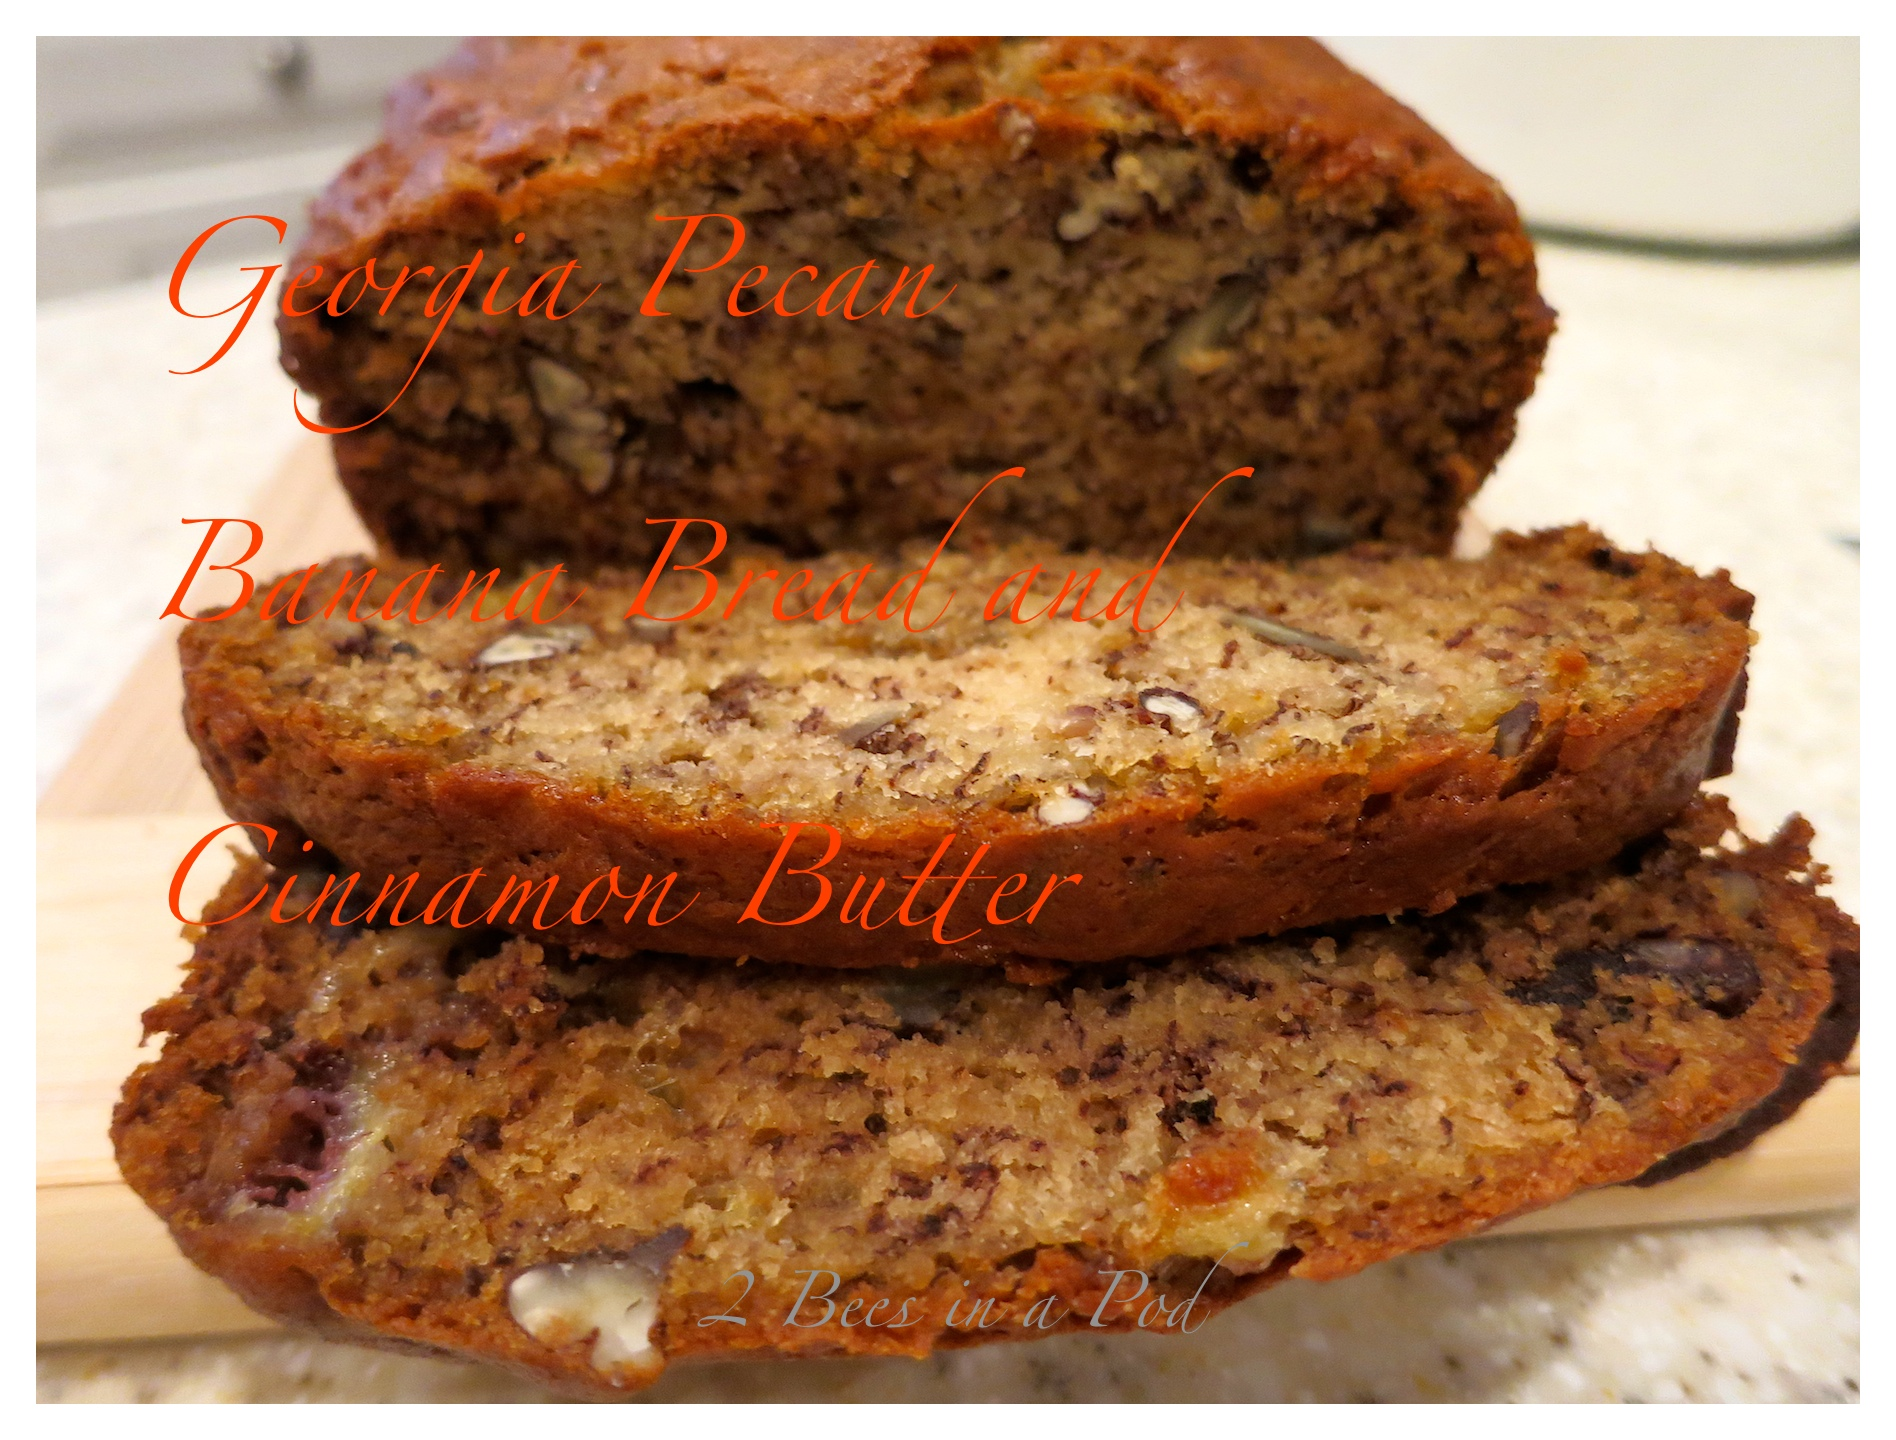 Yummy Georgia Pecan Banana Bread with Cinnamon Butter